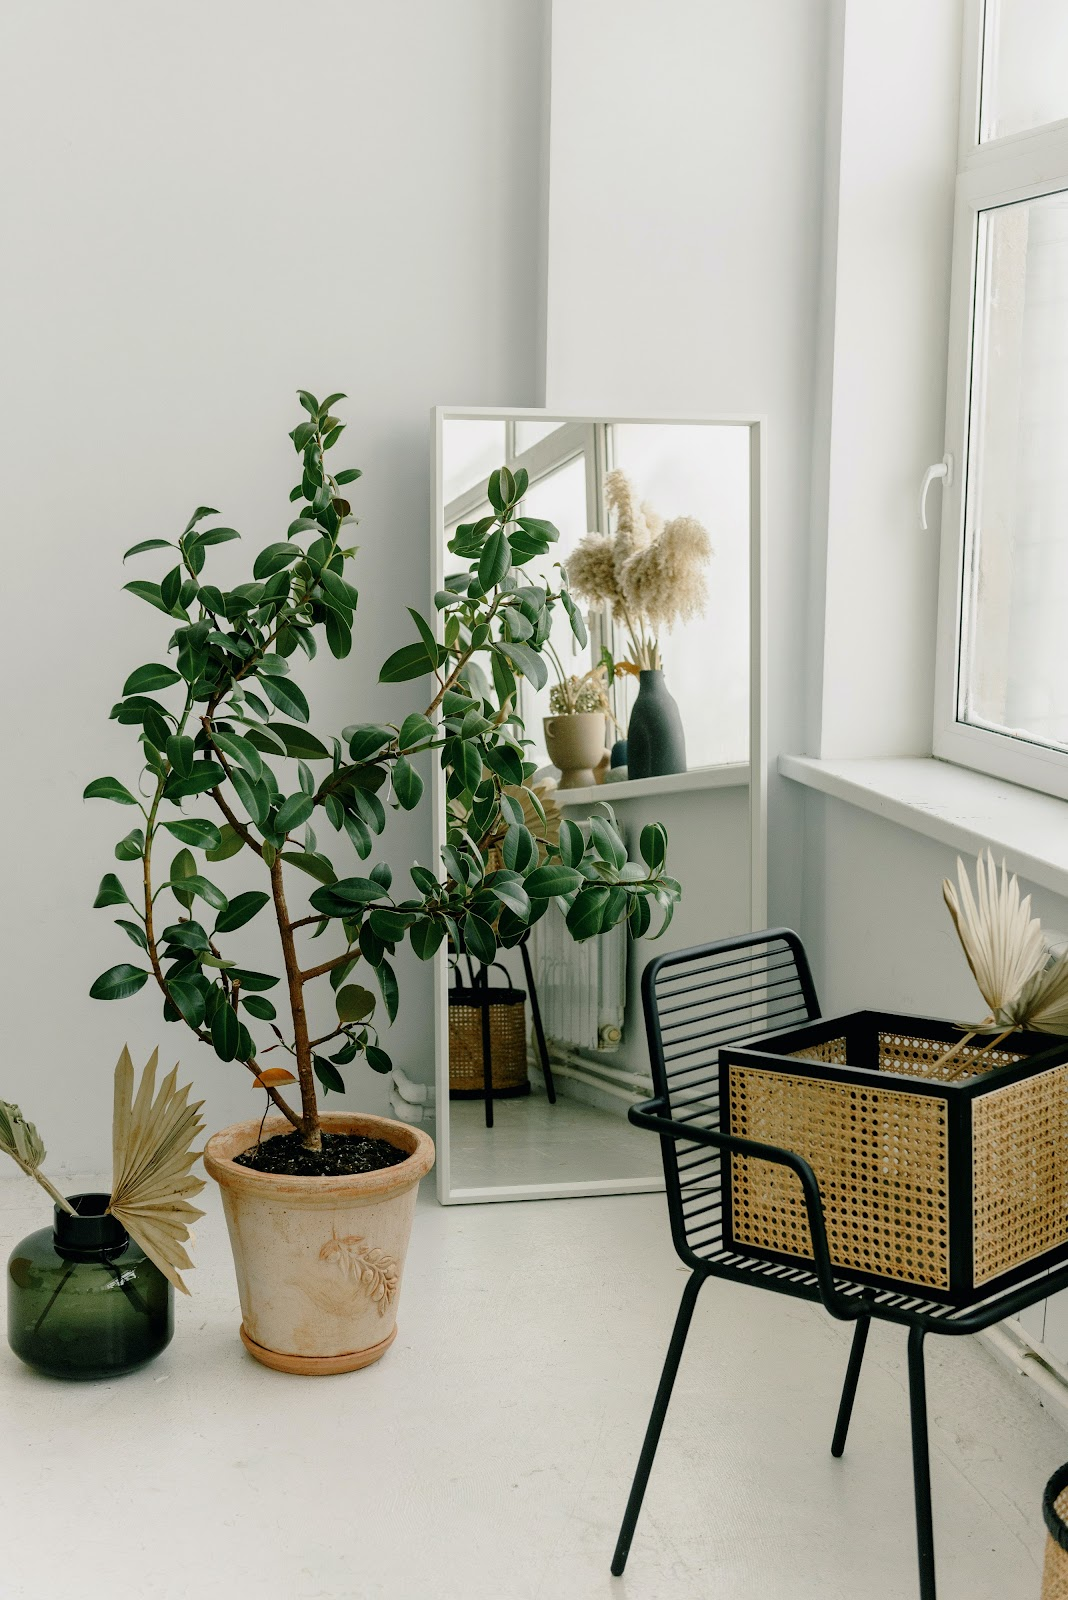 corner of a condo unit space with interior design and indoor plants for minimalist living in a condo for sale unit